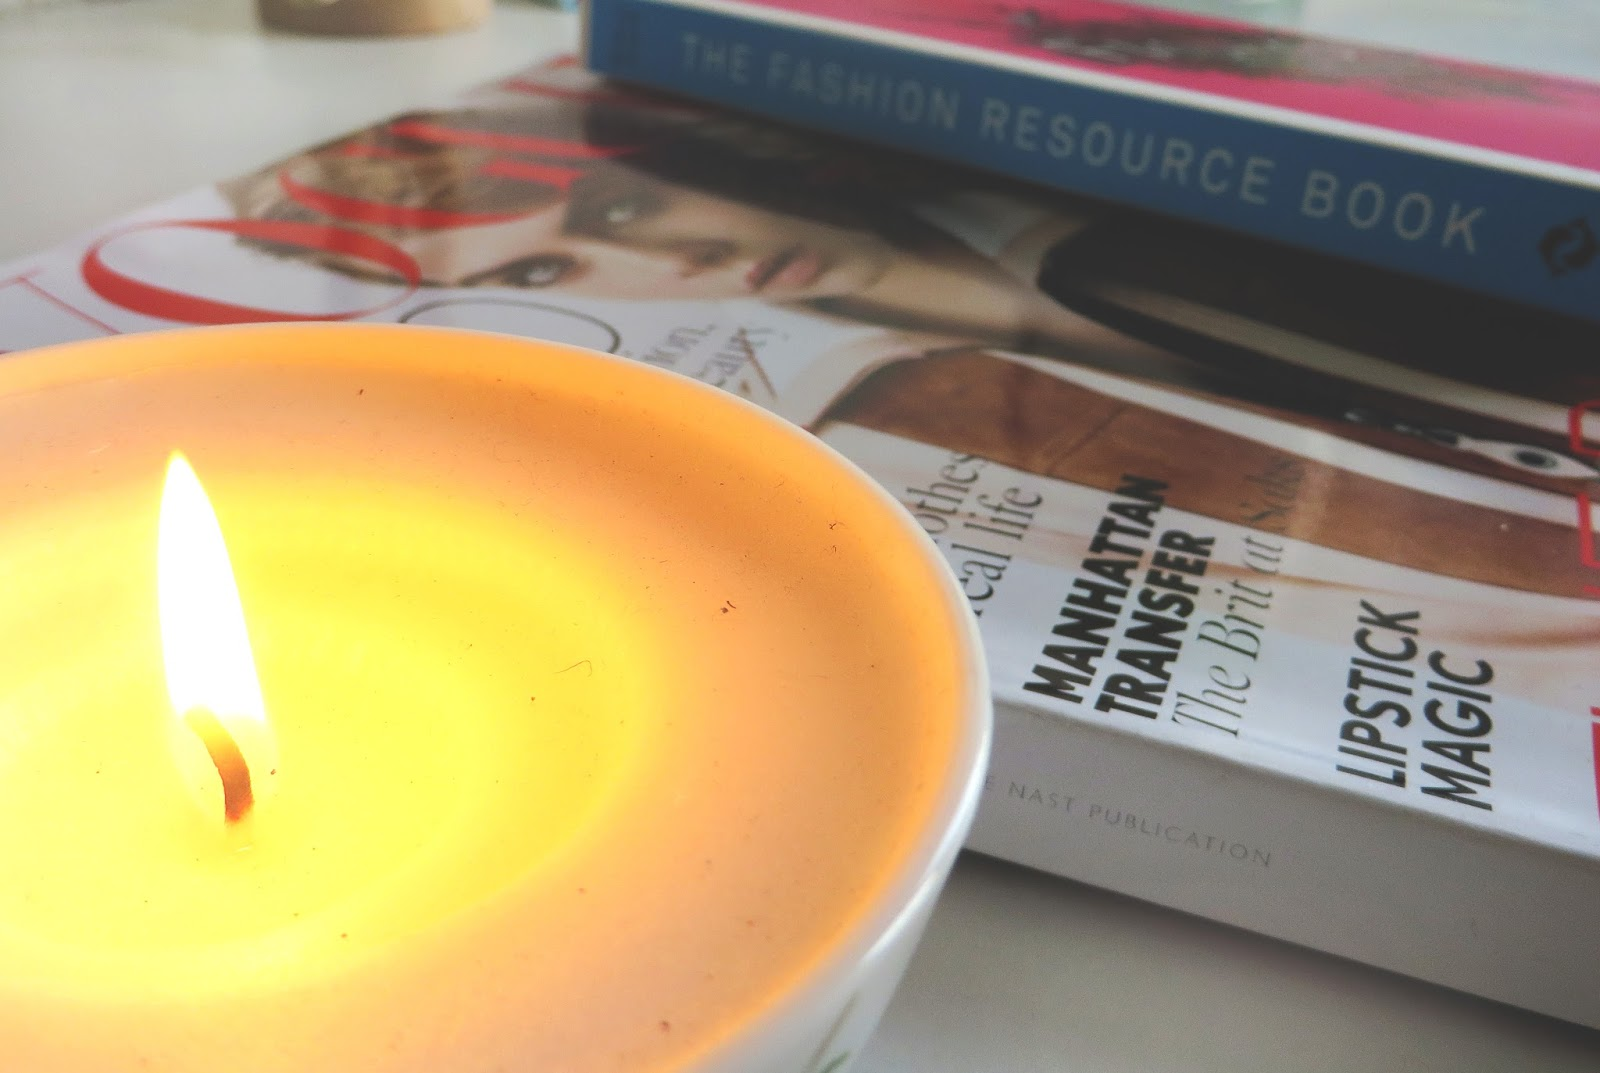 candle, vogue, the fashion resource book